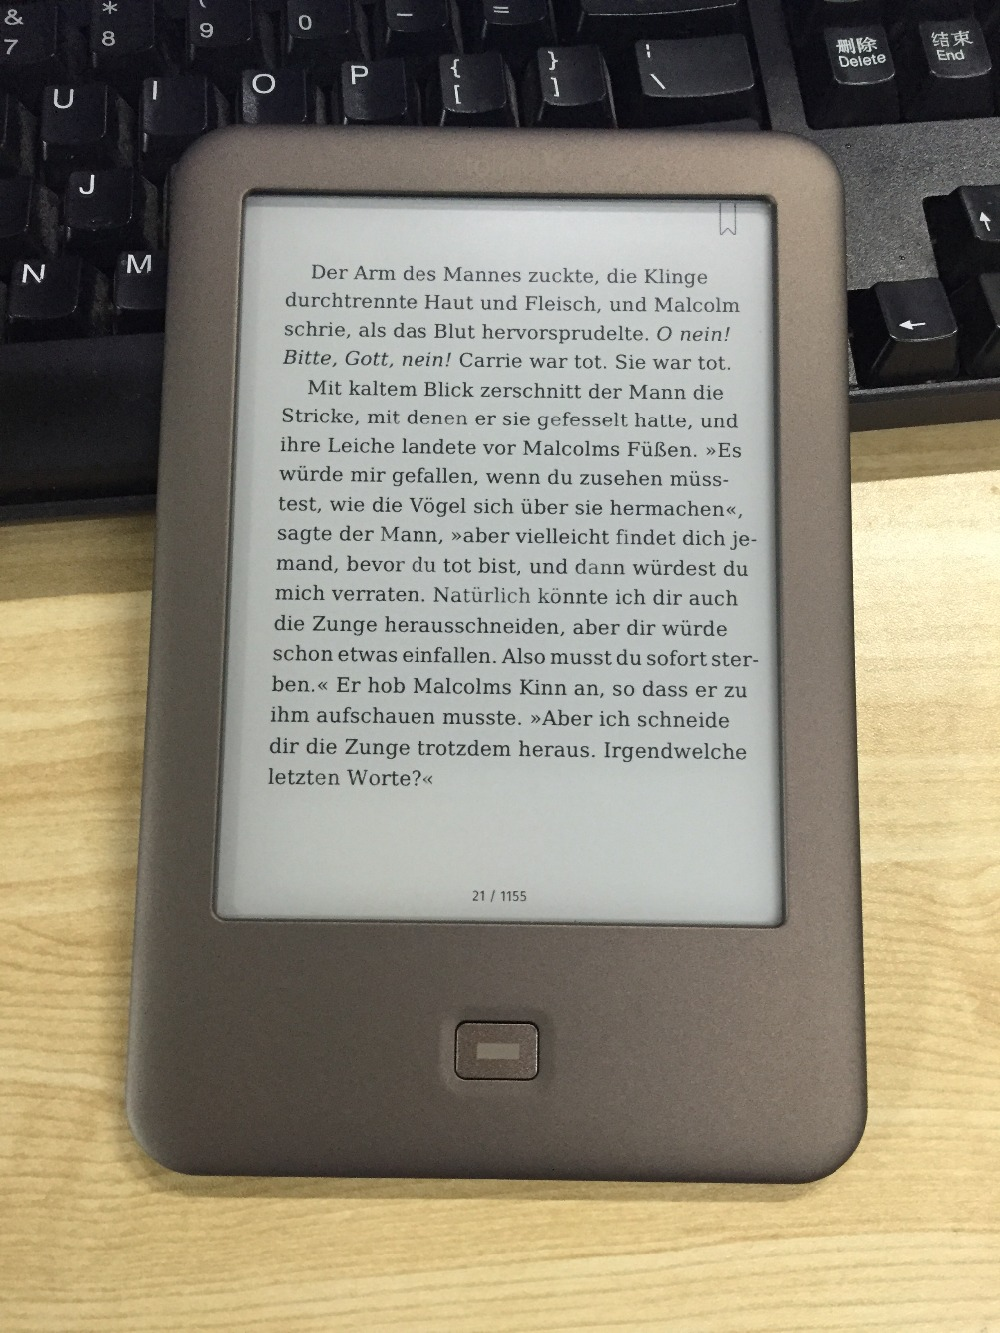 Light e-book Tolino Shine ebook reader E-ink 6 inch 1024×758 WIFI e books 4GB book Reader